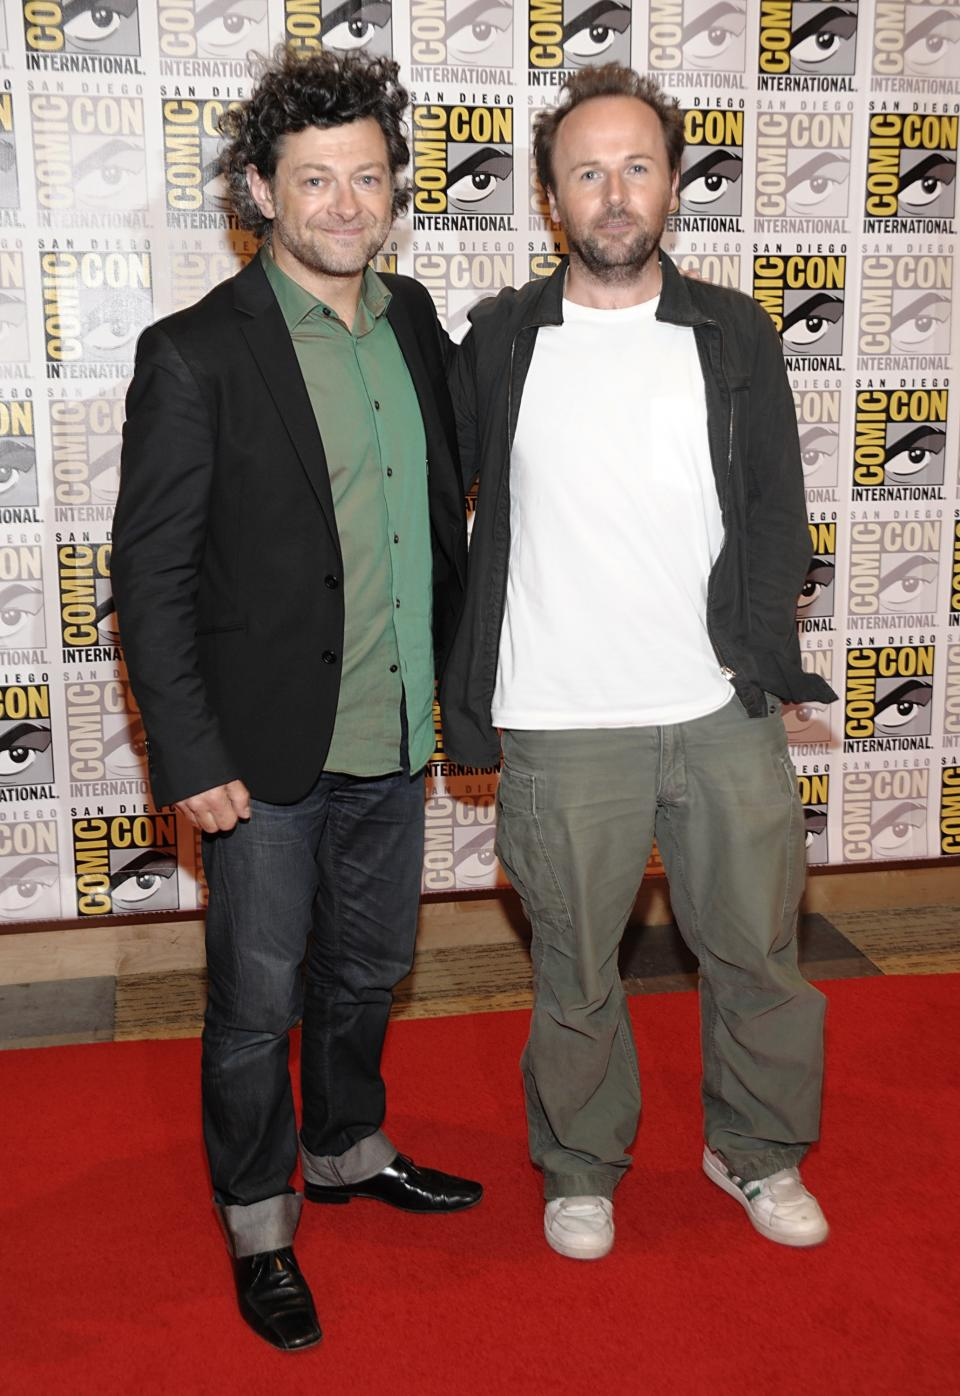 "Actor Andy Serkis, left, and director Rupert Wyatt arrive at a news conference for the feature film ""Rise of the Planet of the Apes "" at Comic Con in San Diego, Calif. on Thursday, July 21, 2011. (AP Photo/Dan Steinberg)"